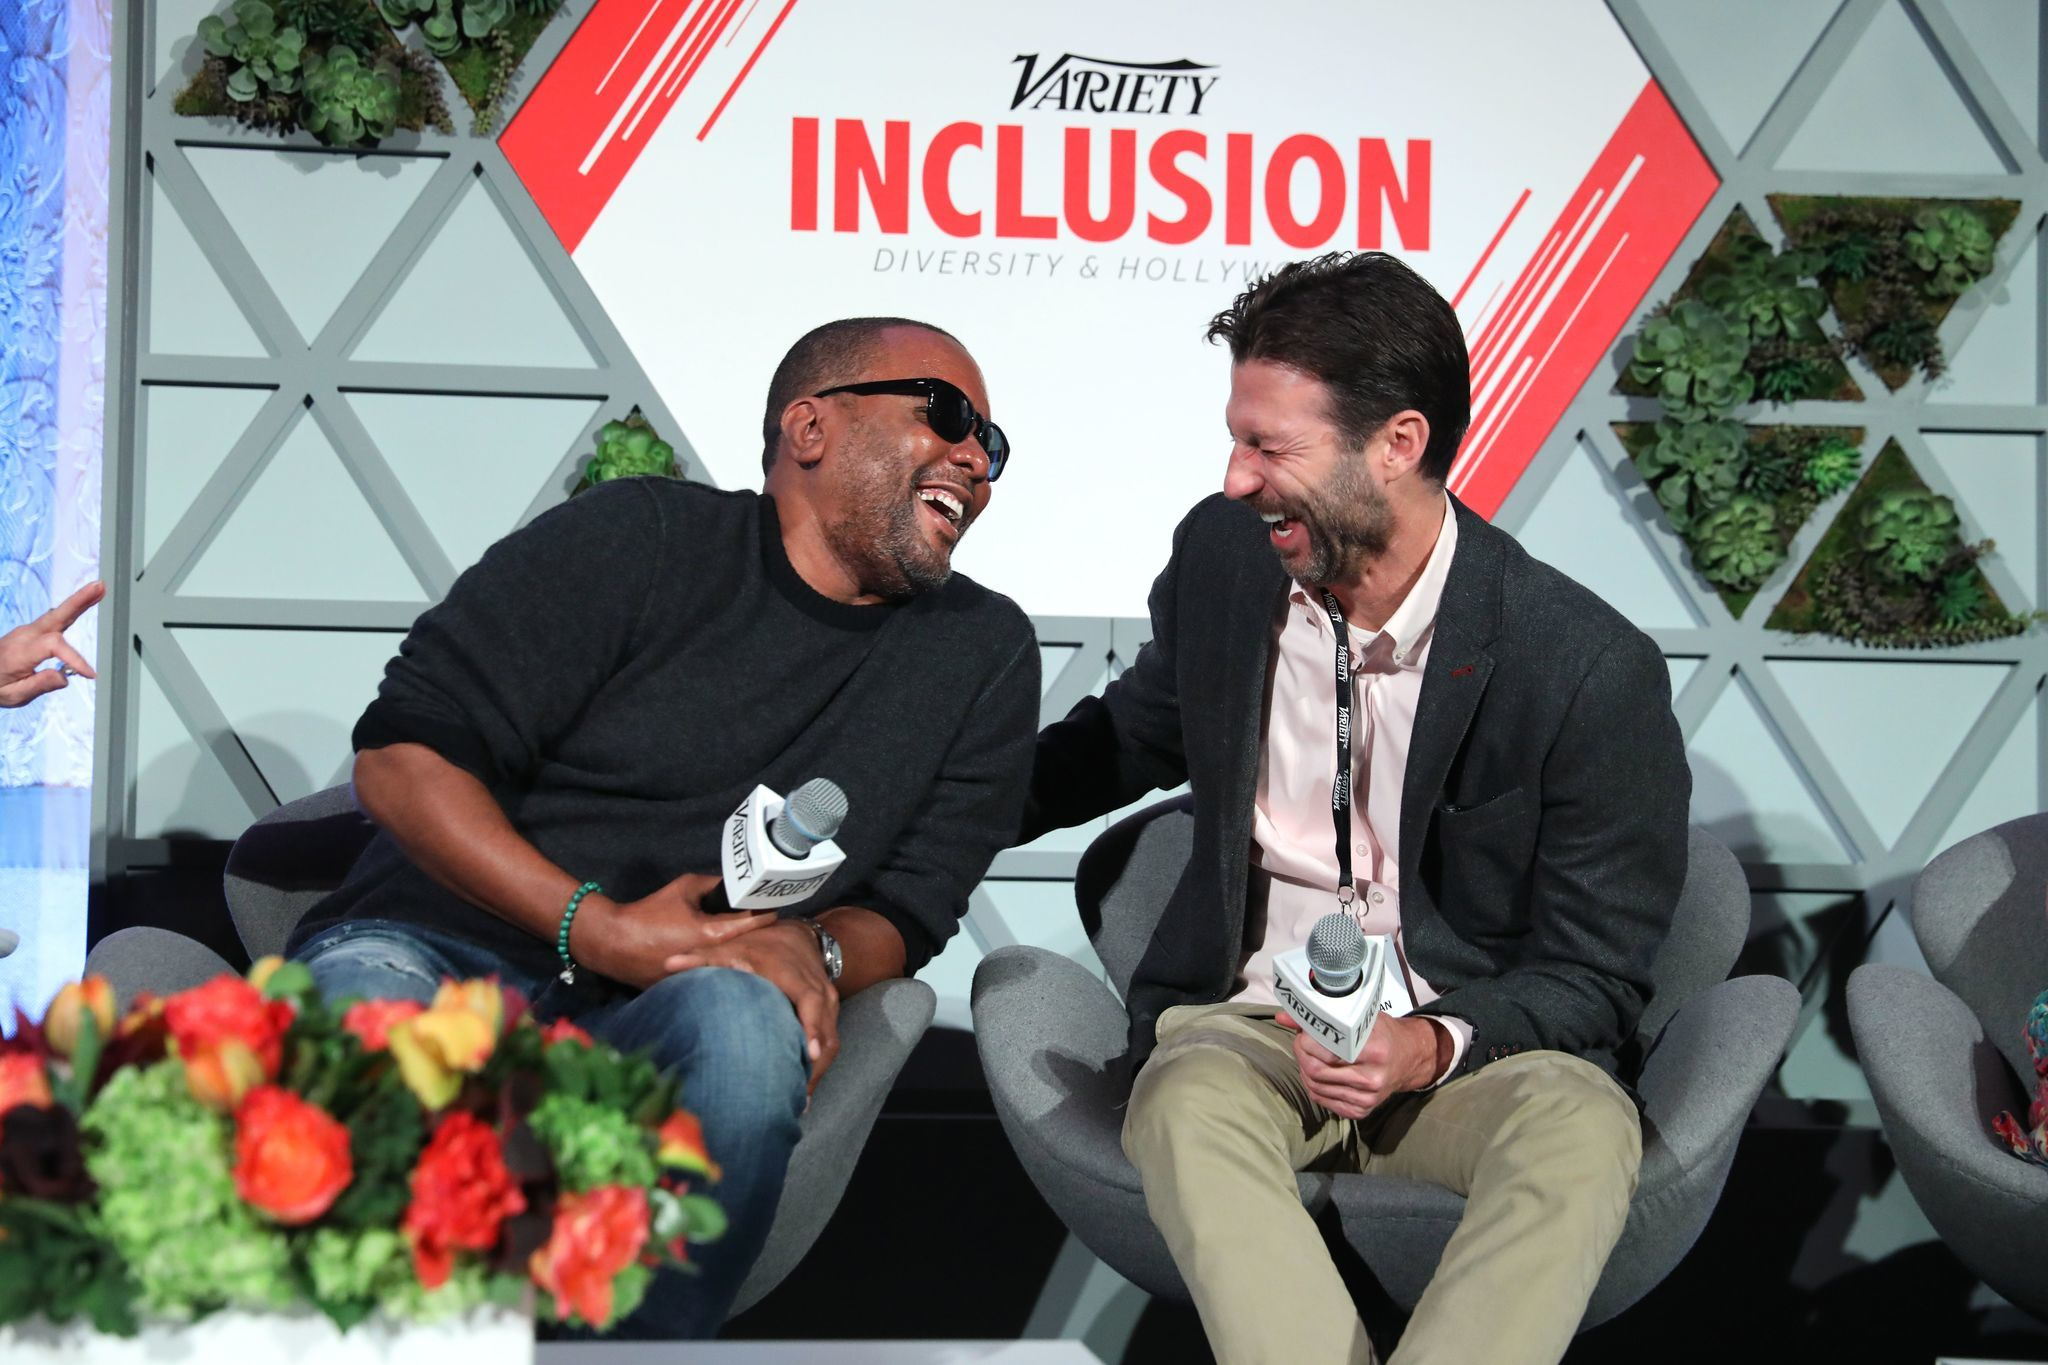 Director Lee Daniels and Participant Media President Jonathan King share a laugh at Variety's Inclusion summit in Los Angeles on Wednesday. (Andreas Branch / Variety / REX / Shutterstock)